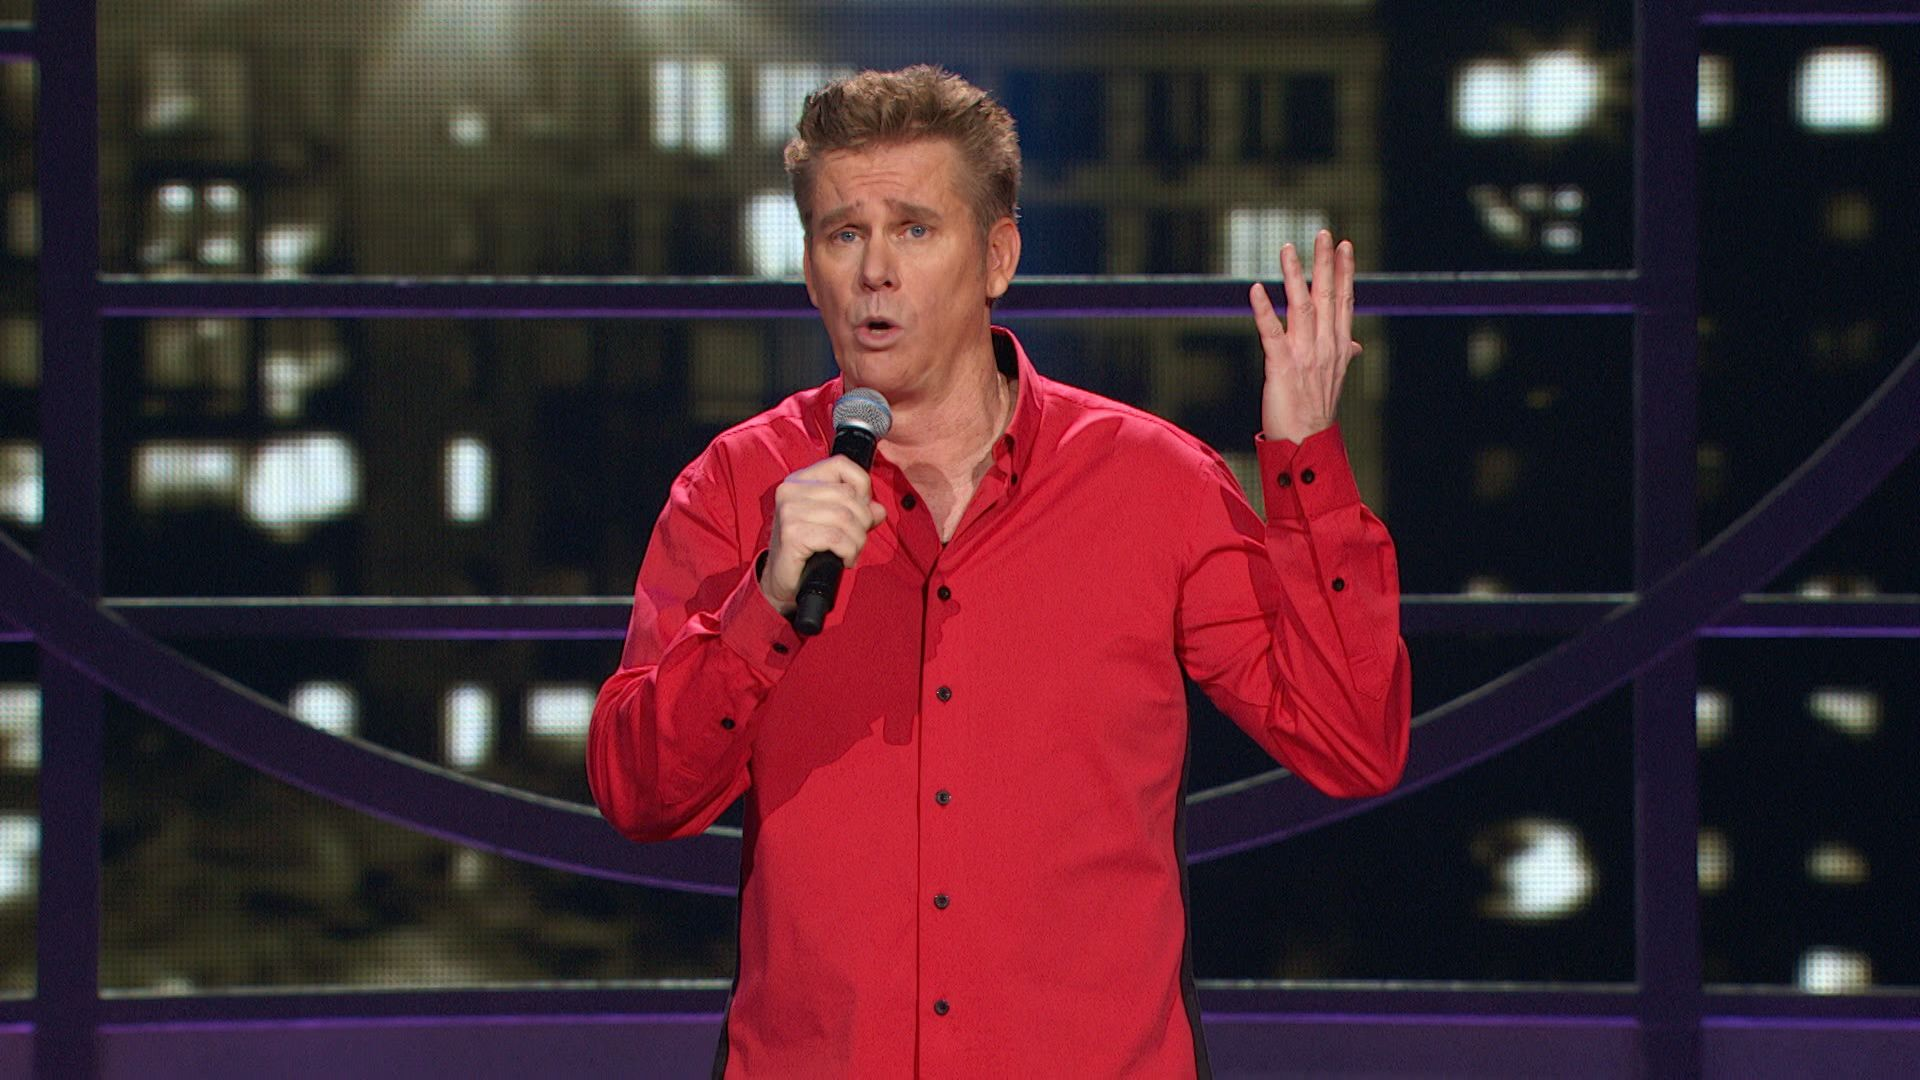 brian regan i before e